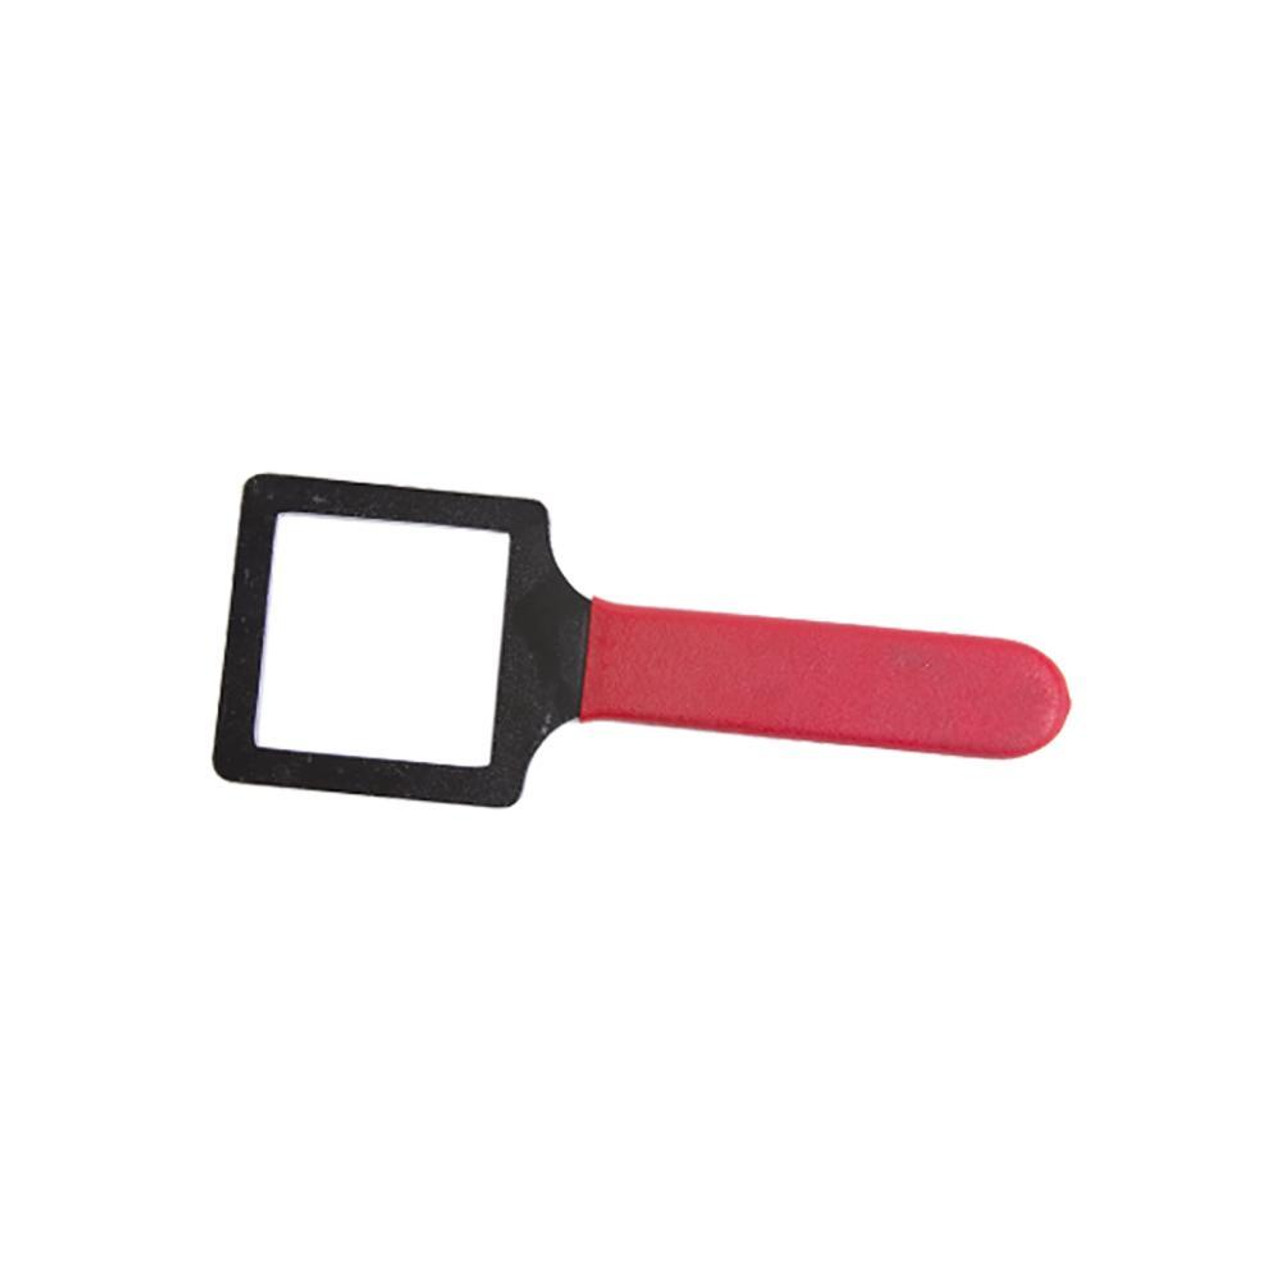 Spanner Wrench (AX30.070.531)